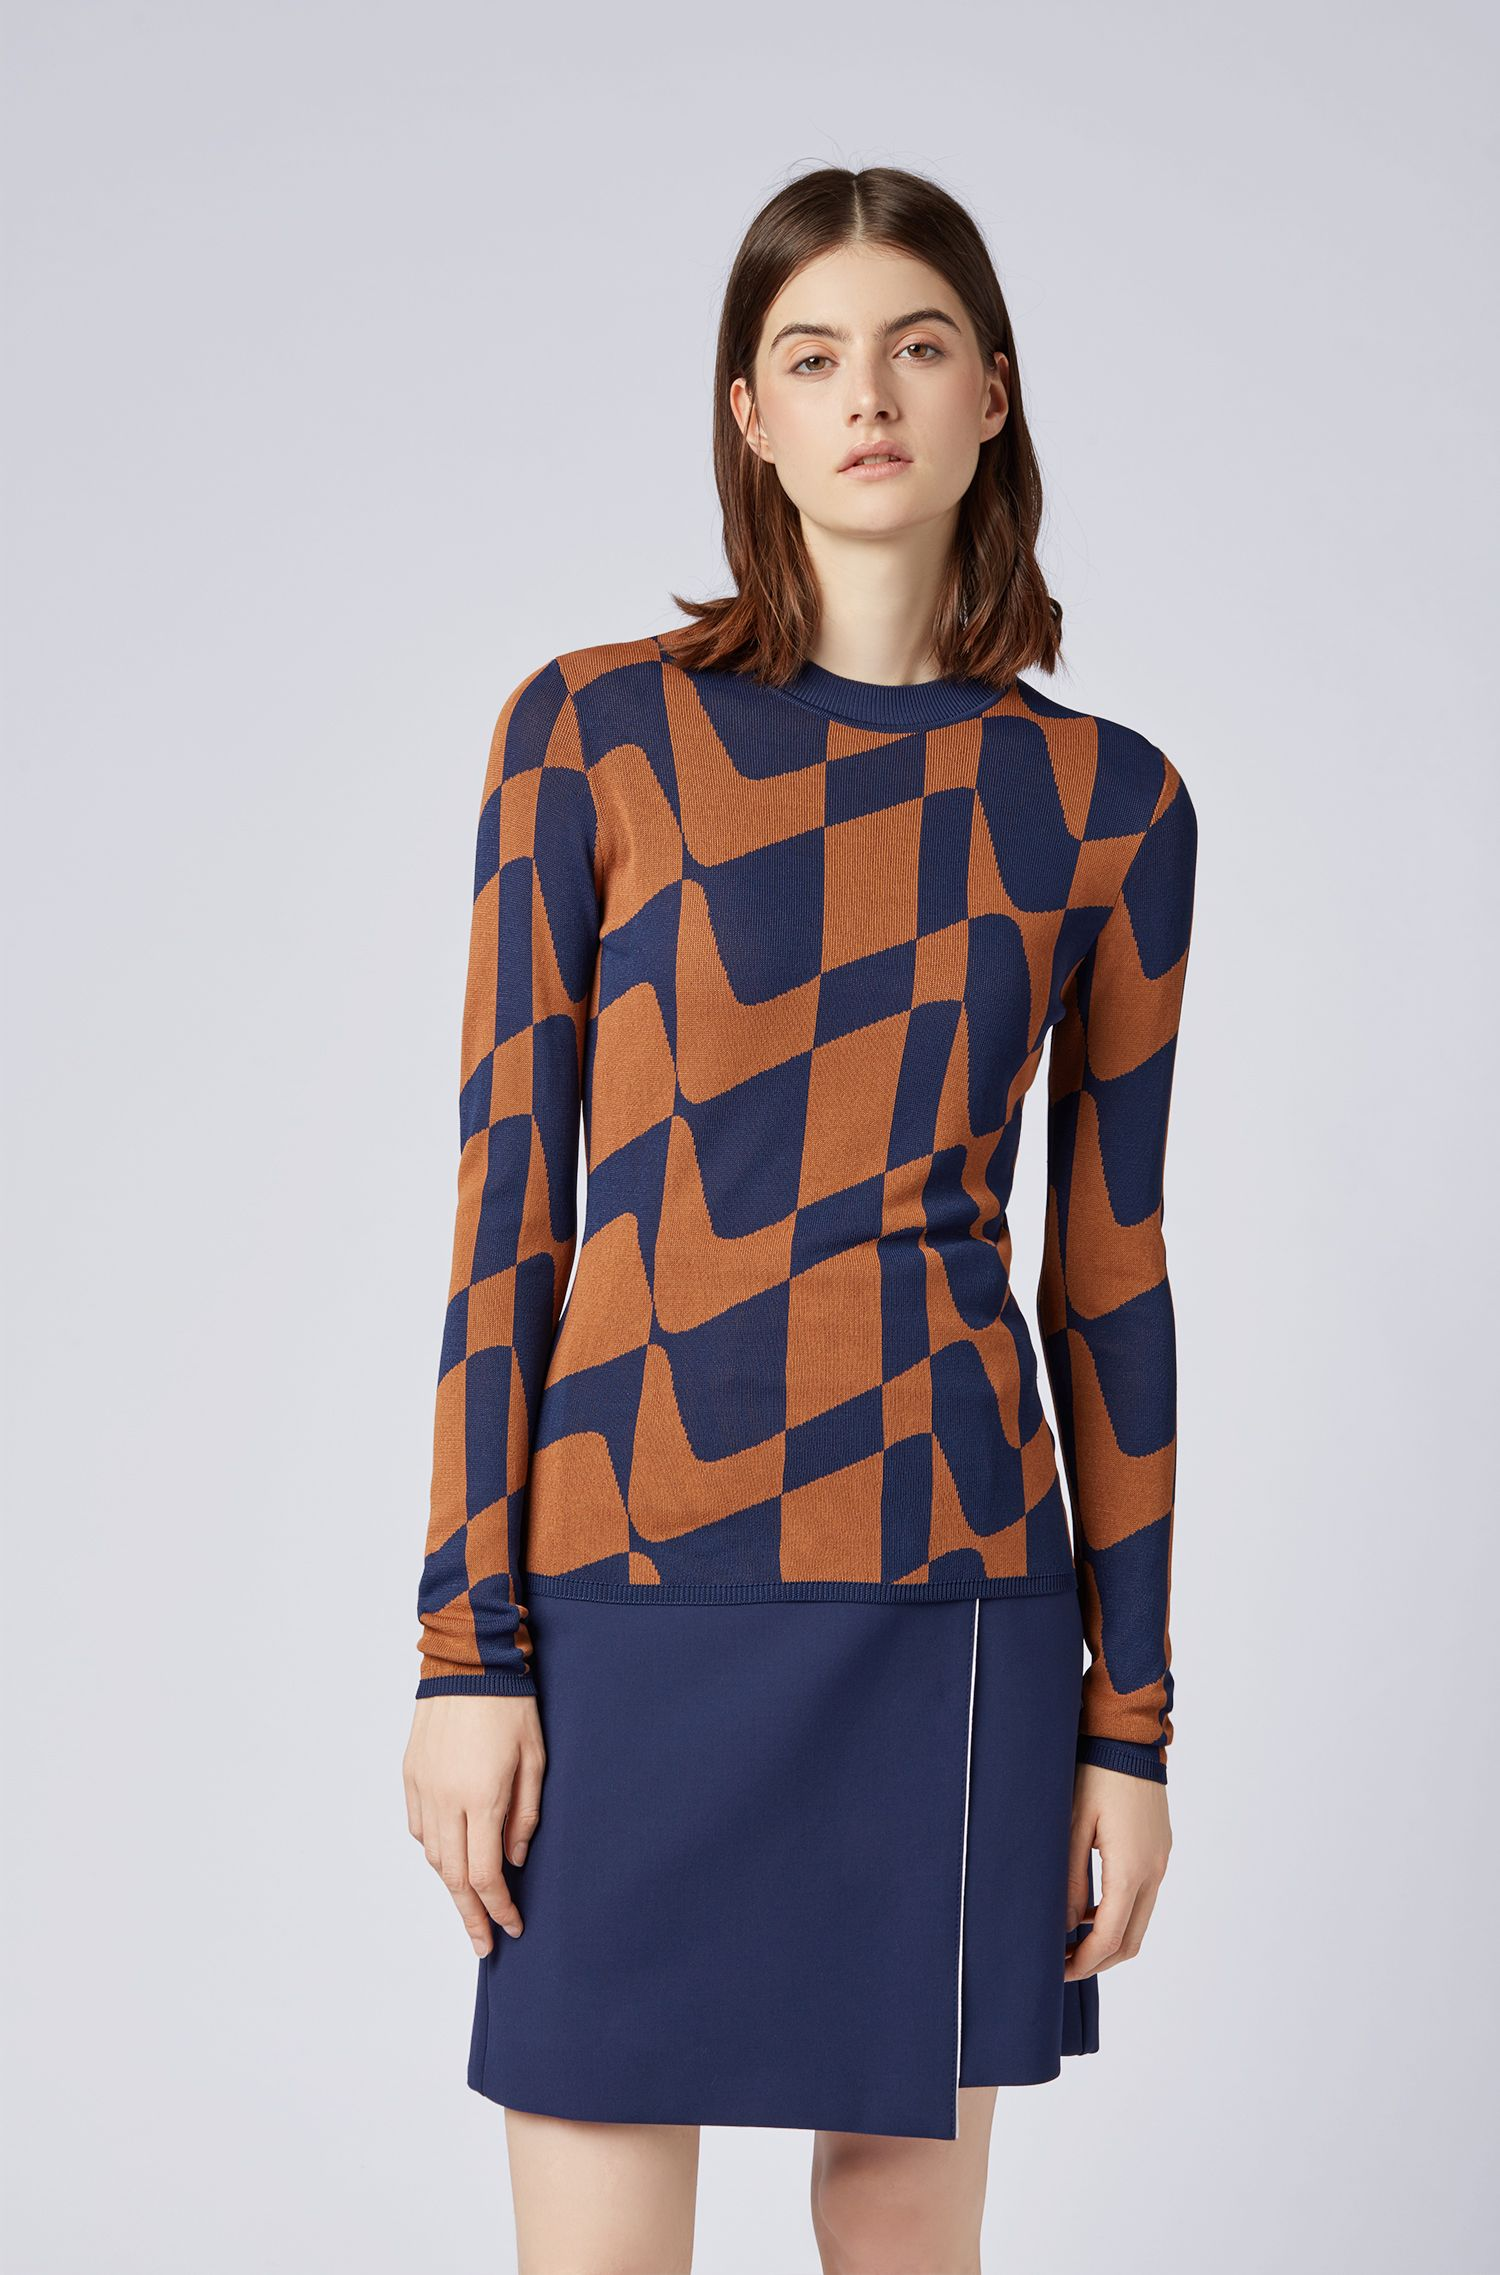 Slim-fit sweater in abstract Italian jacquard, Patterned